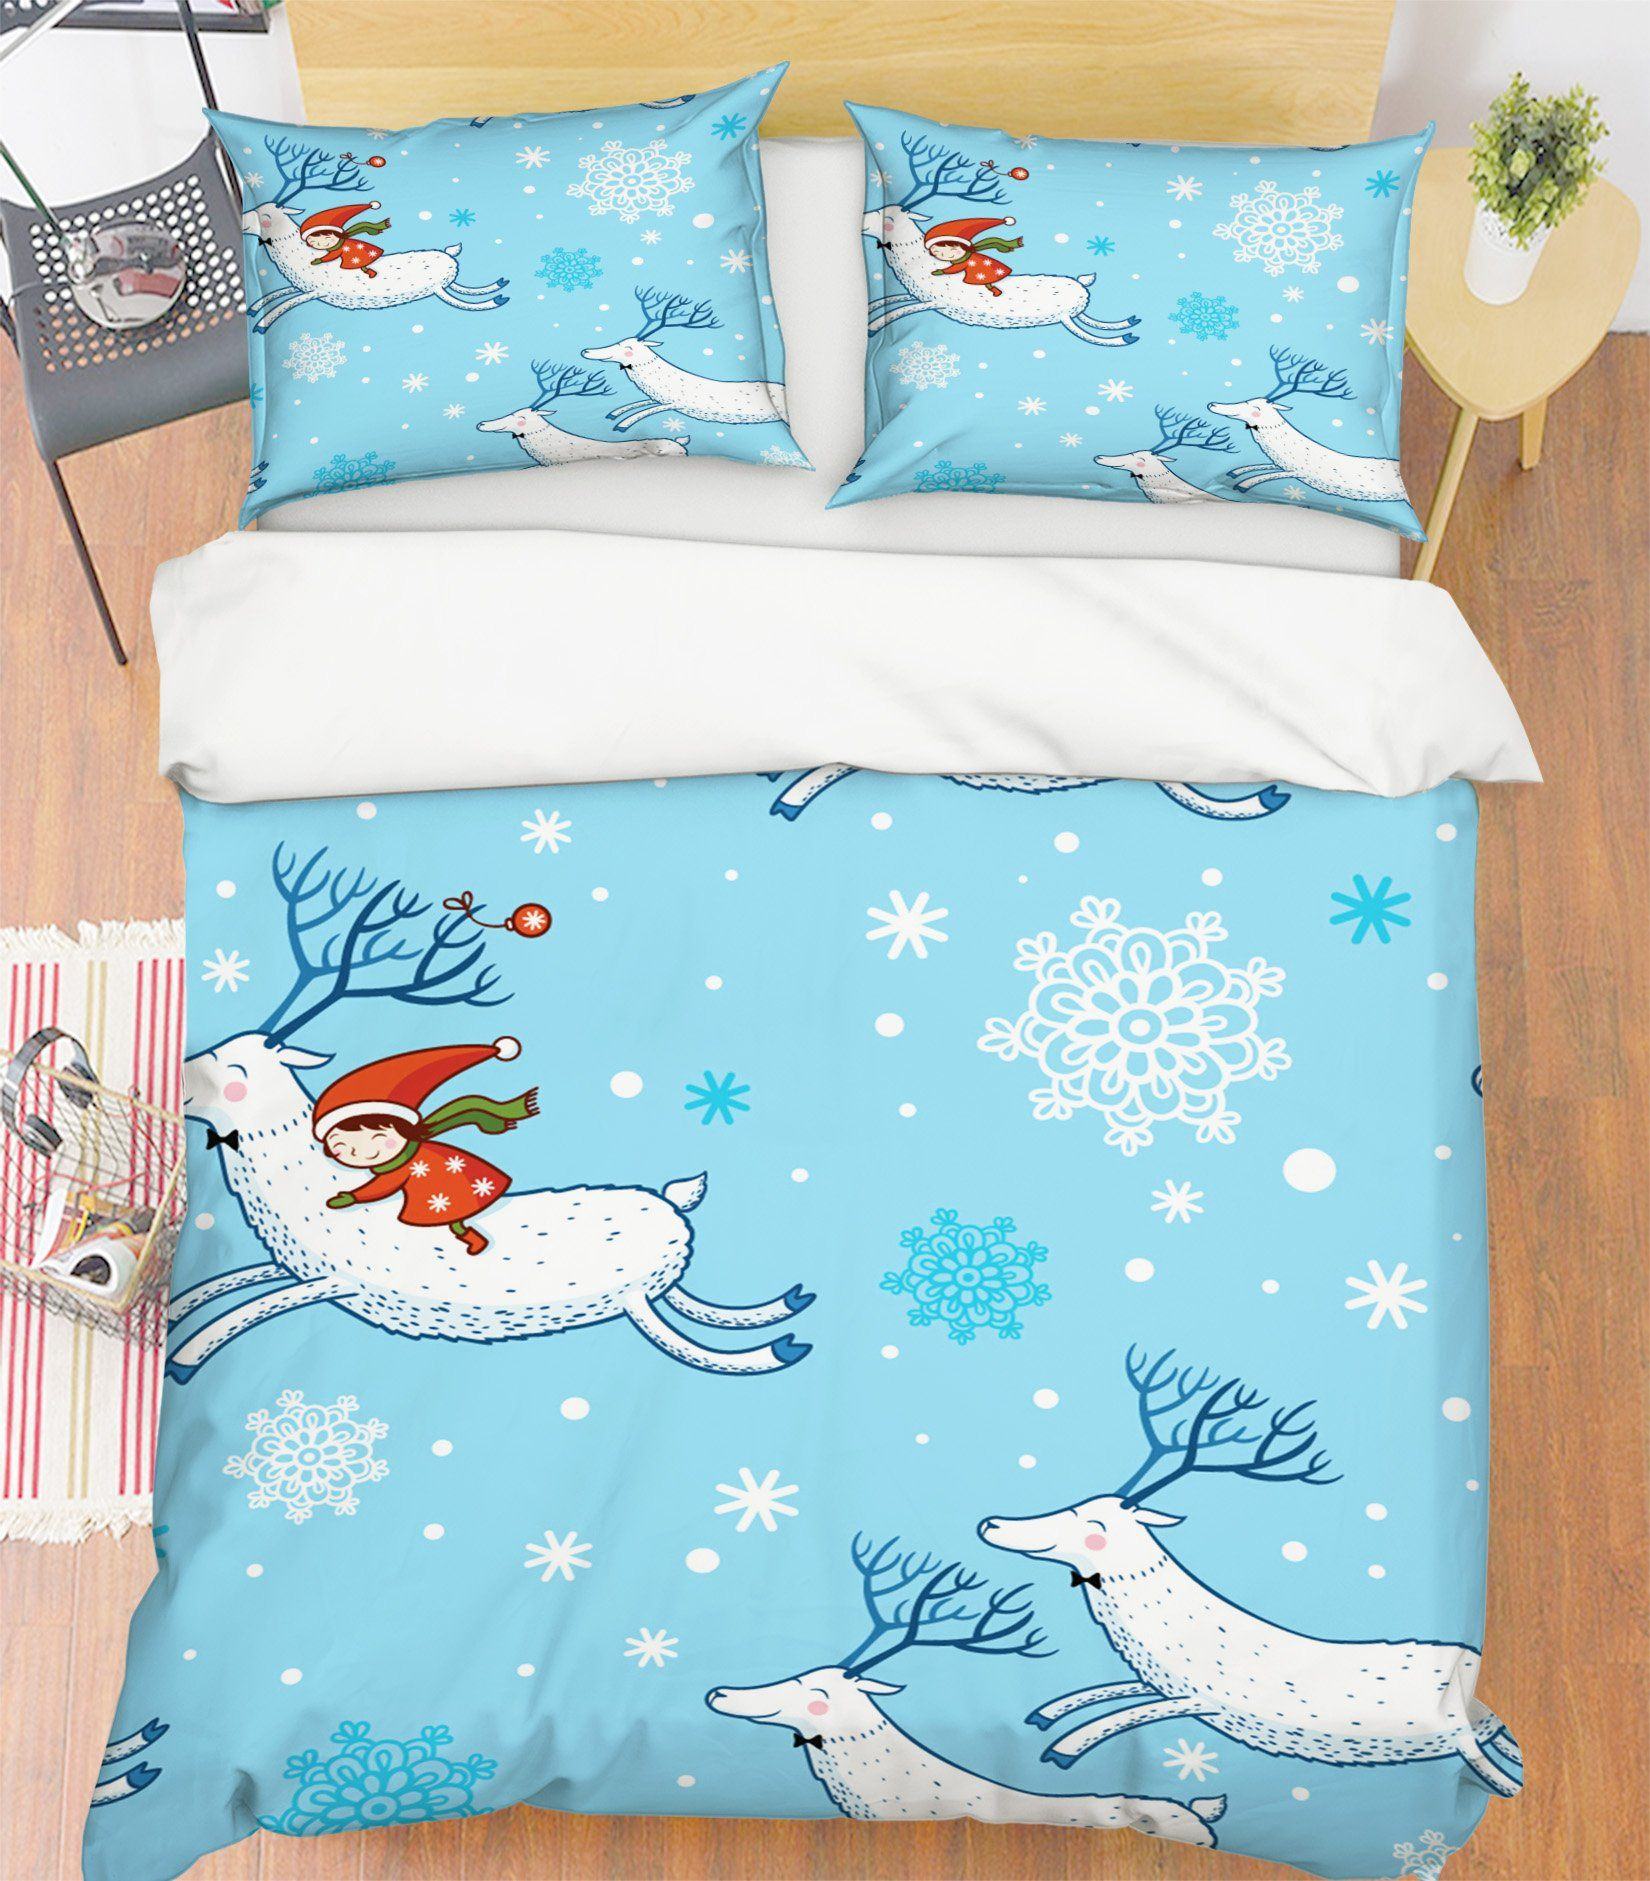 3D Christmas Cute White Deer 47 Bed Pillowcases Quilt